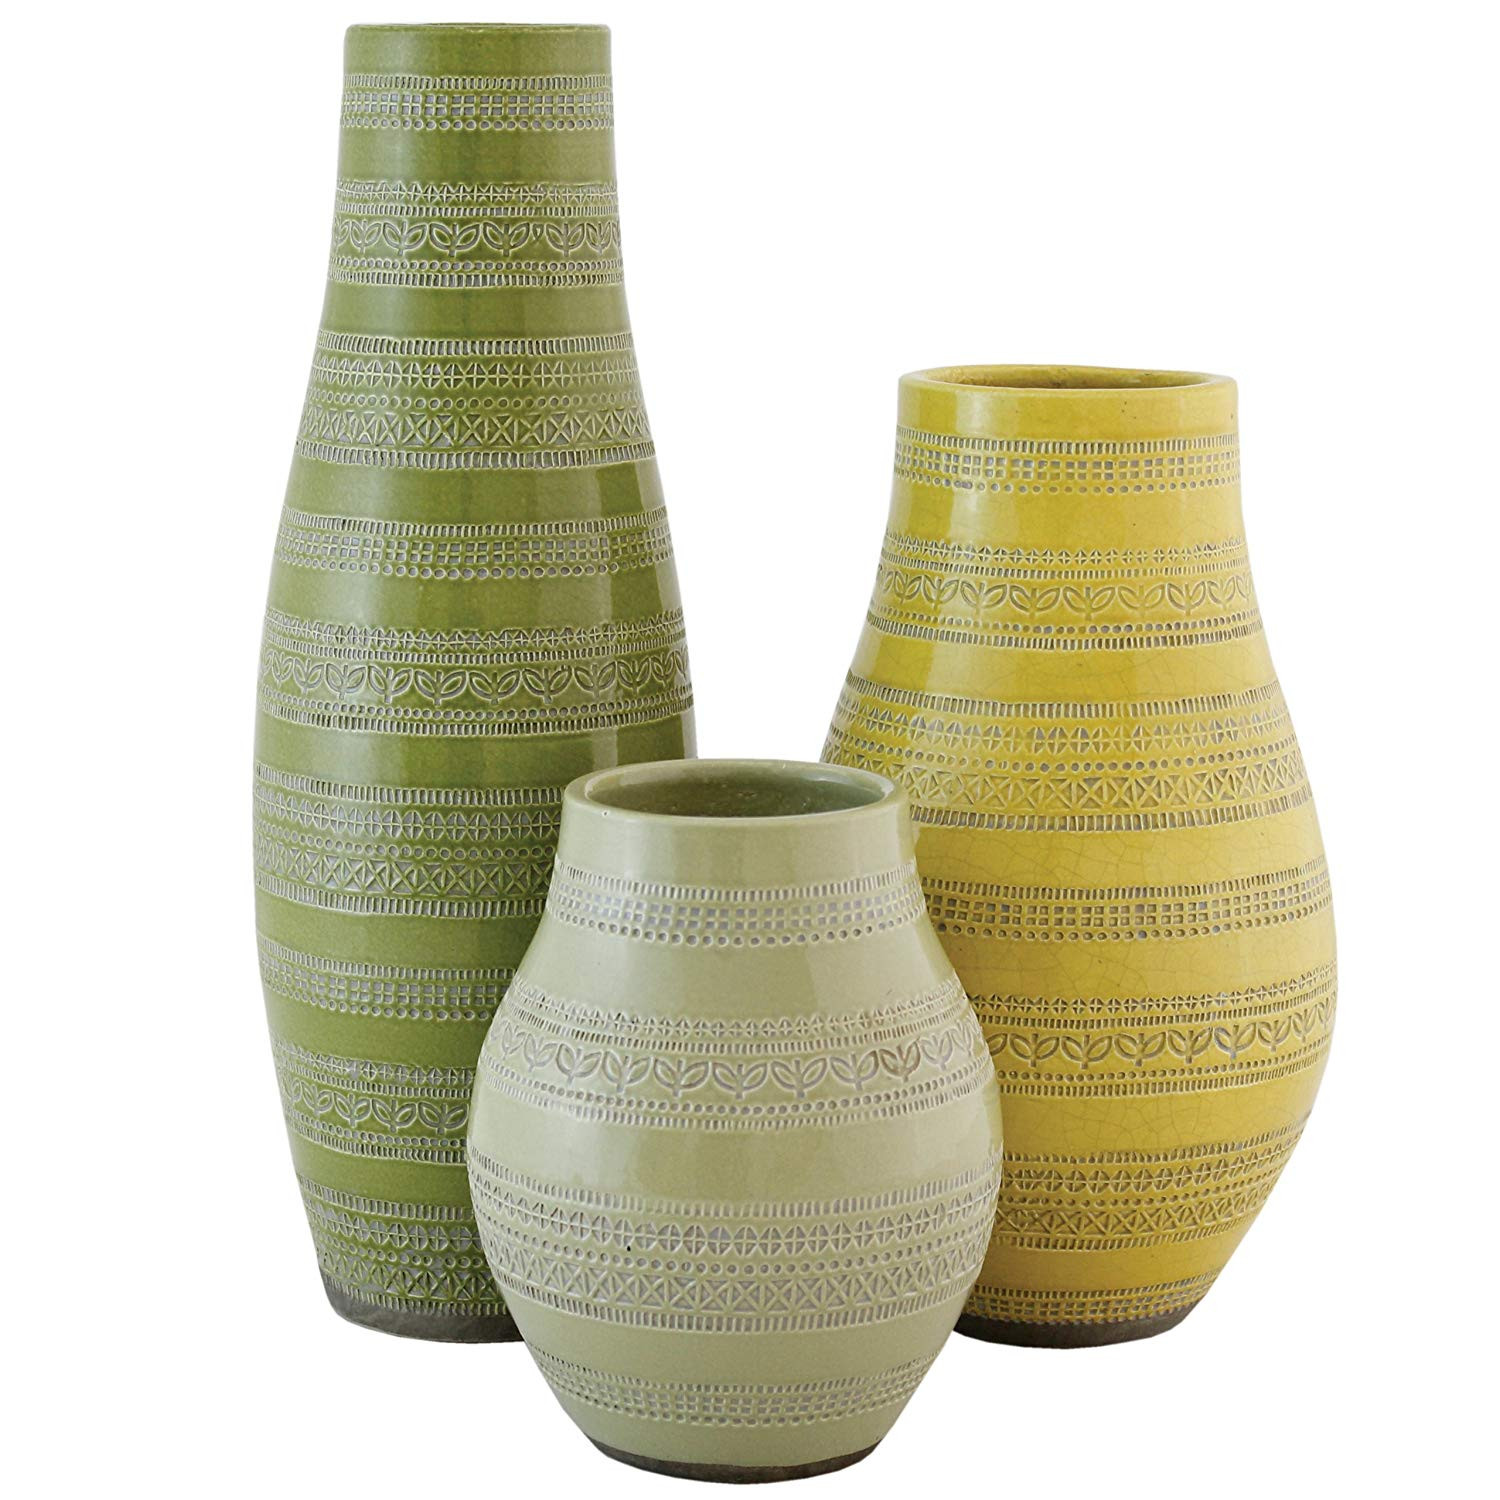 terracotta clay vase of selectives bellini terracotta vases set of 3 amazon co uk throughout selectives bellini terracotta vases set of 3 amazon co uk kitchen home